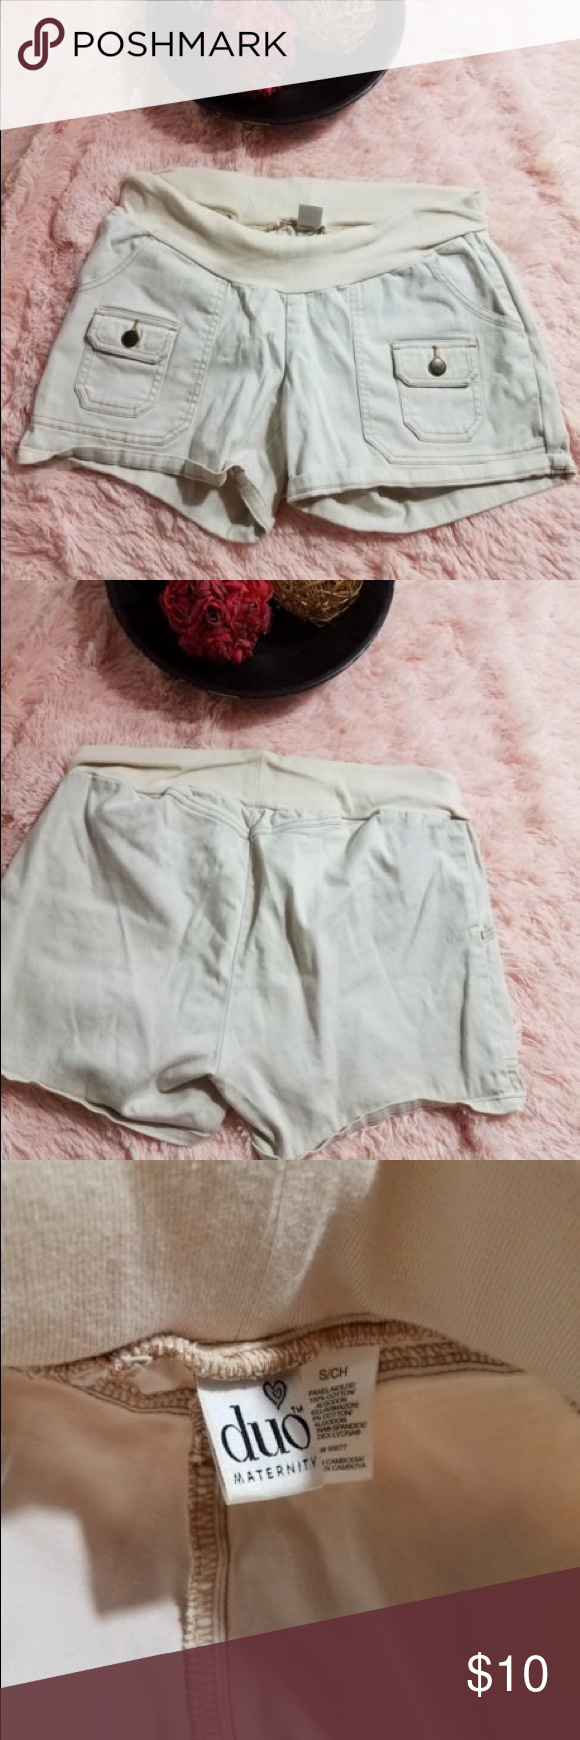 Duo Maternity Women's SIze Small Shorts Shorts are great for the summer!  Nice shorts in good condition duo maternity Shorts